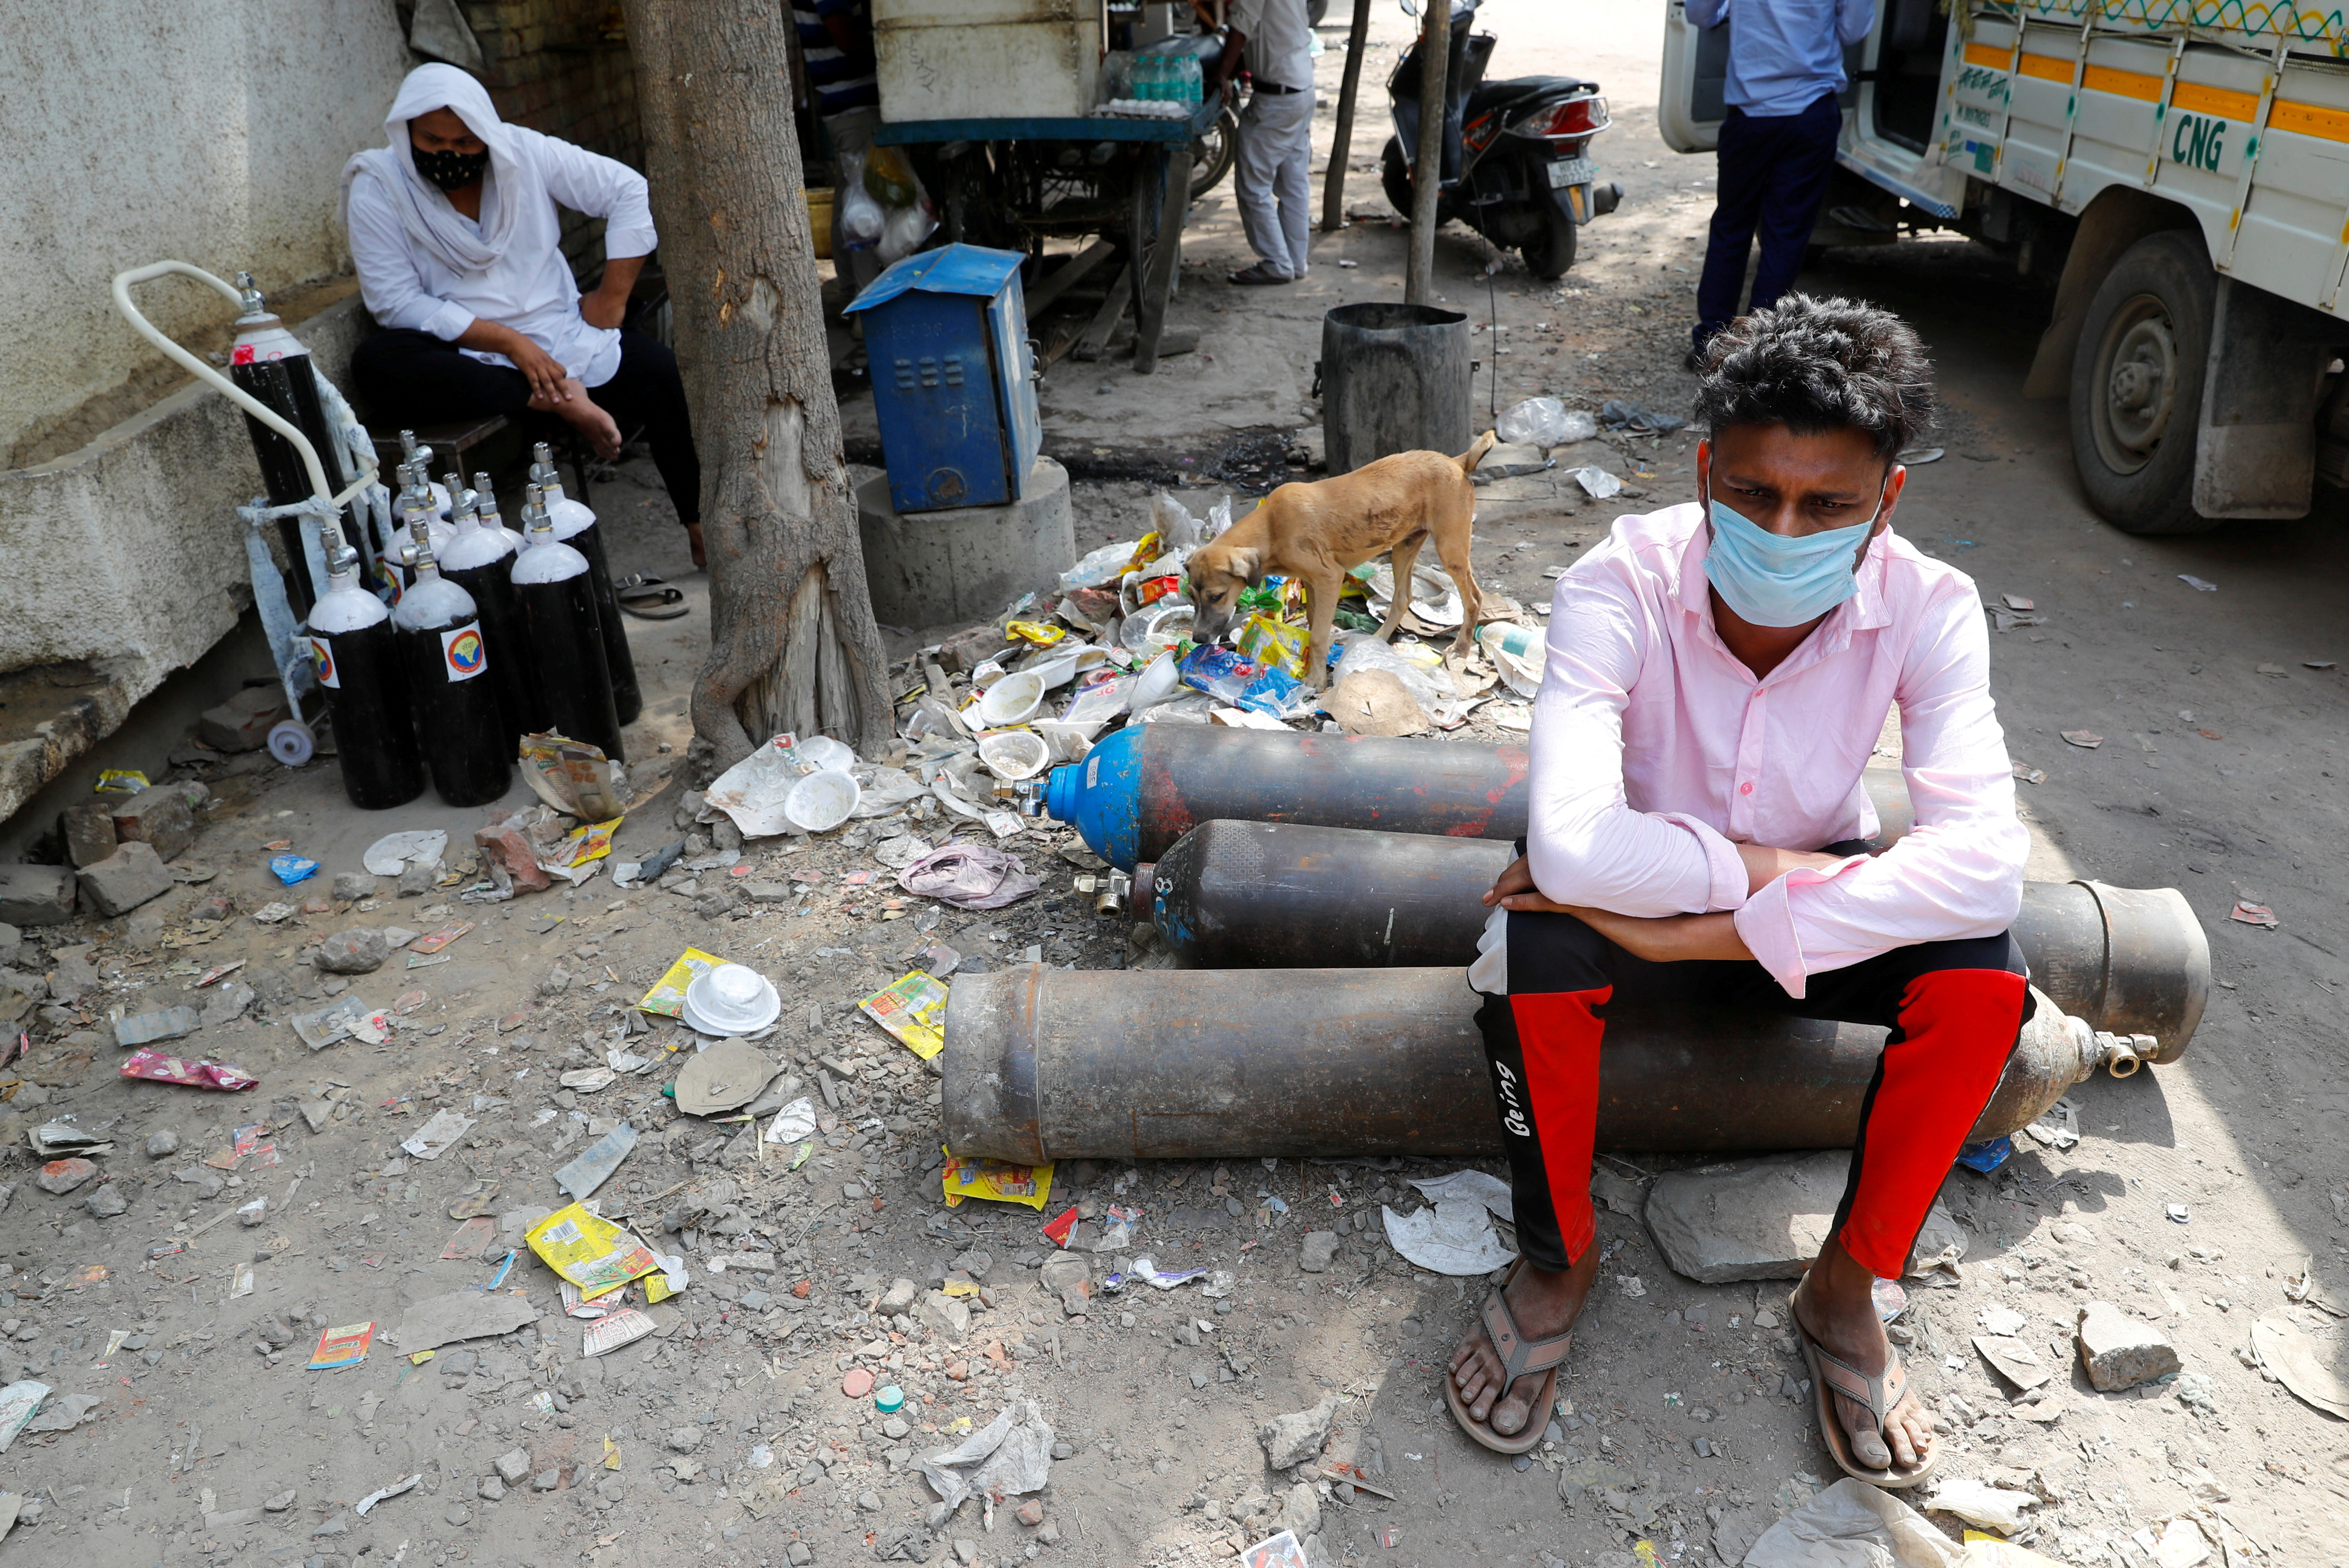 Sumit Kumar, 28, sits on an oxygen cylinder as he waits outside a factory to get it refilled, amidst the spread of the coronavirus disease (COVID-19) in New Delhi, India, April 28, 2021. REUTERS/Adnan Abidi/File Photo